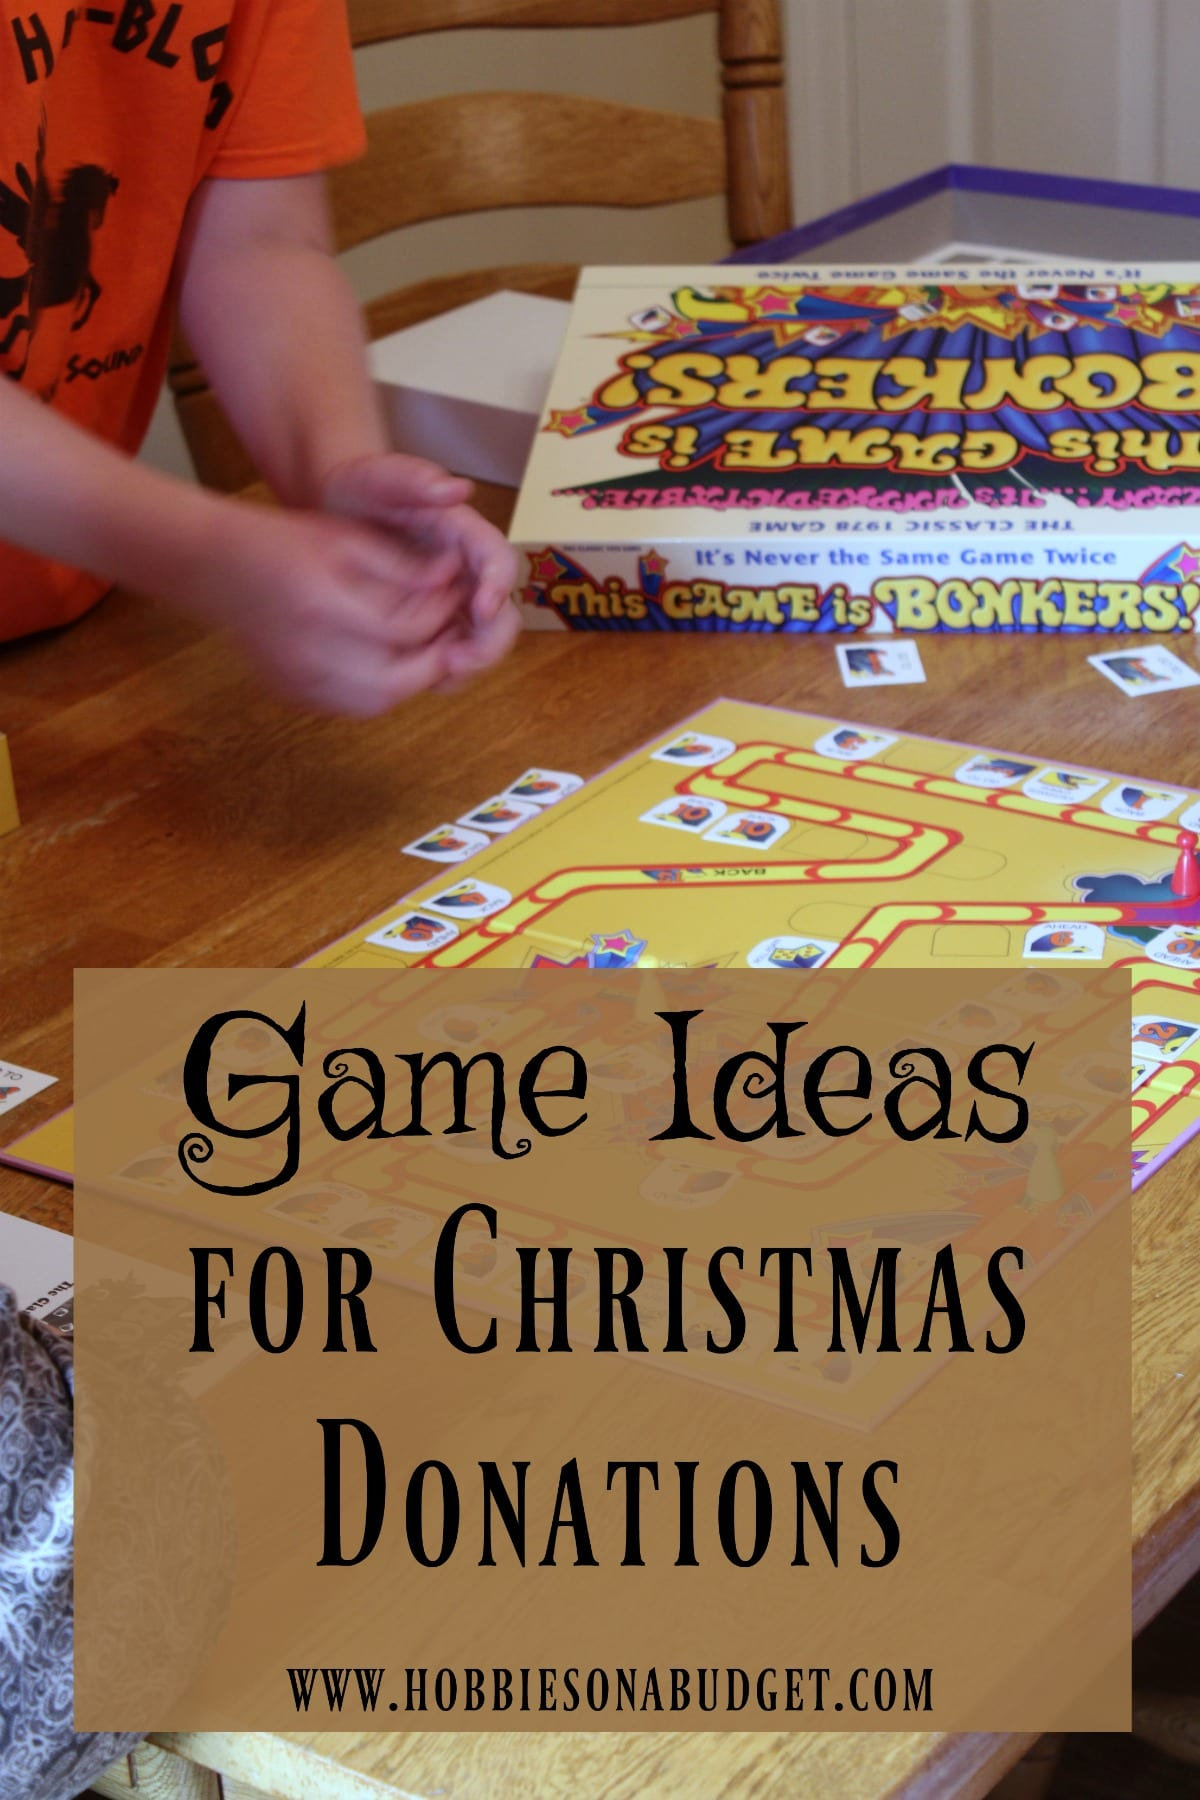 Game Ideas for Christmas Donations